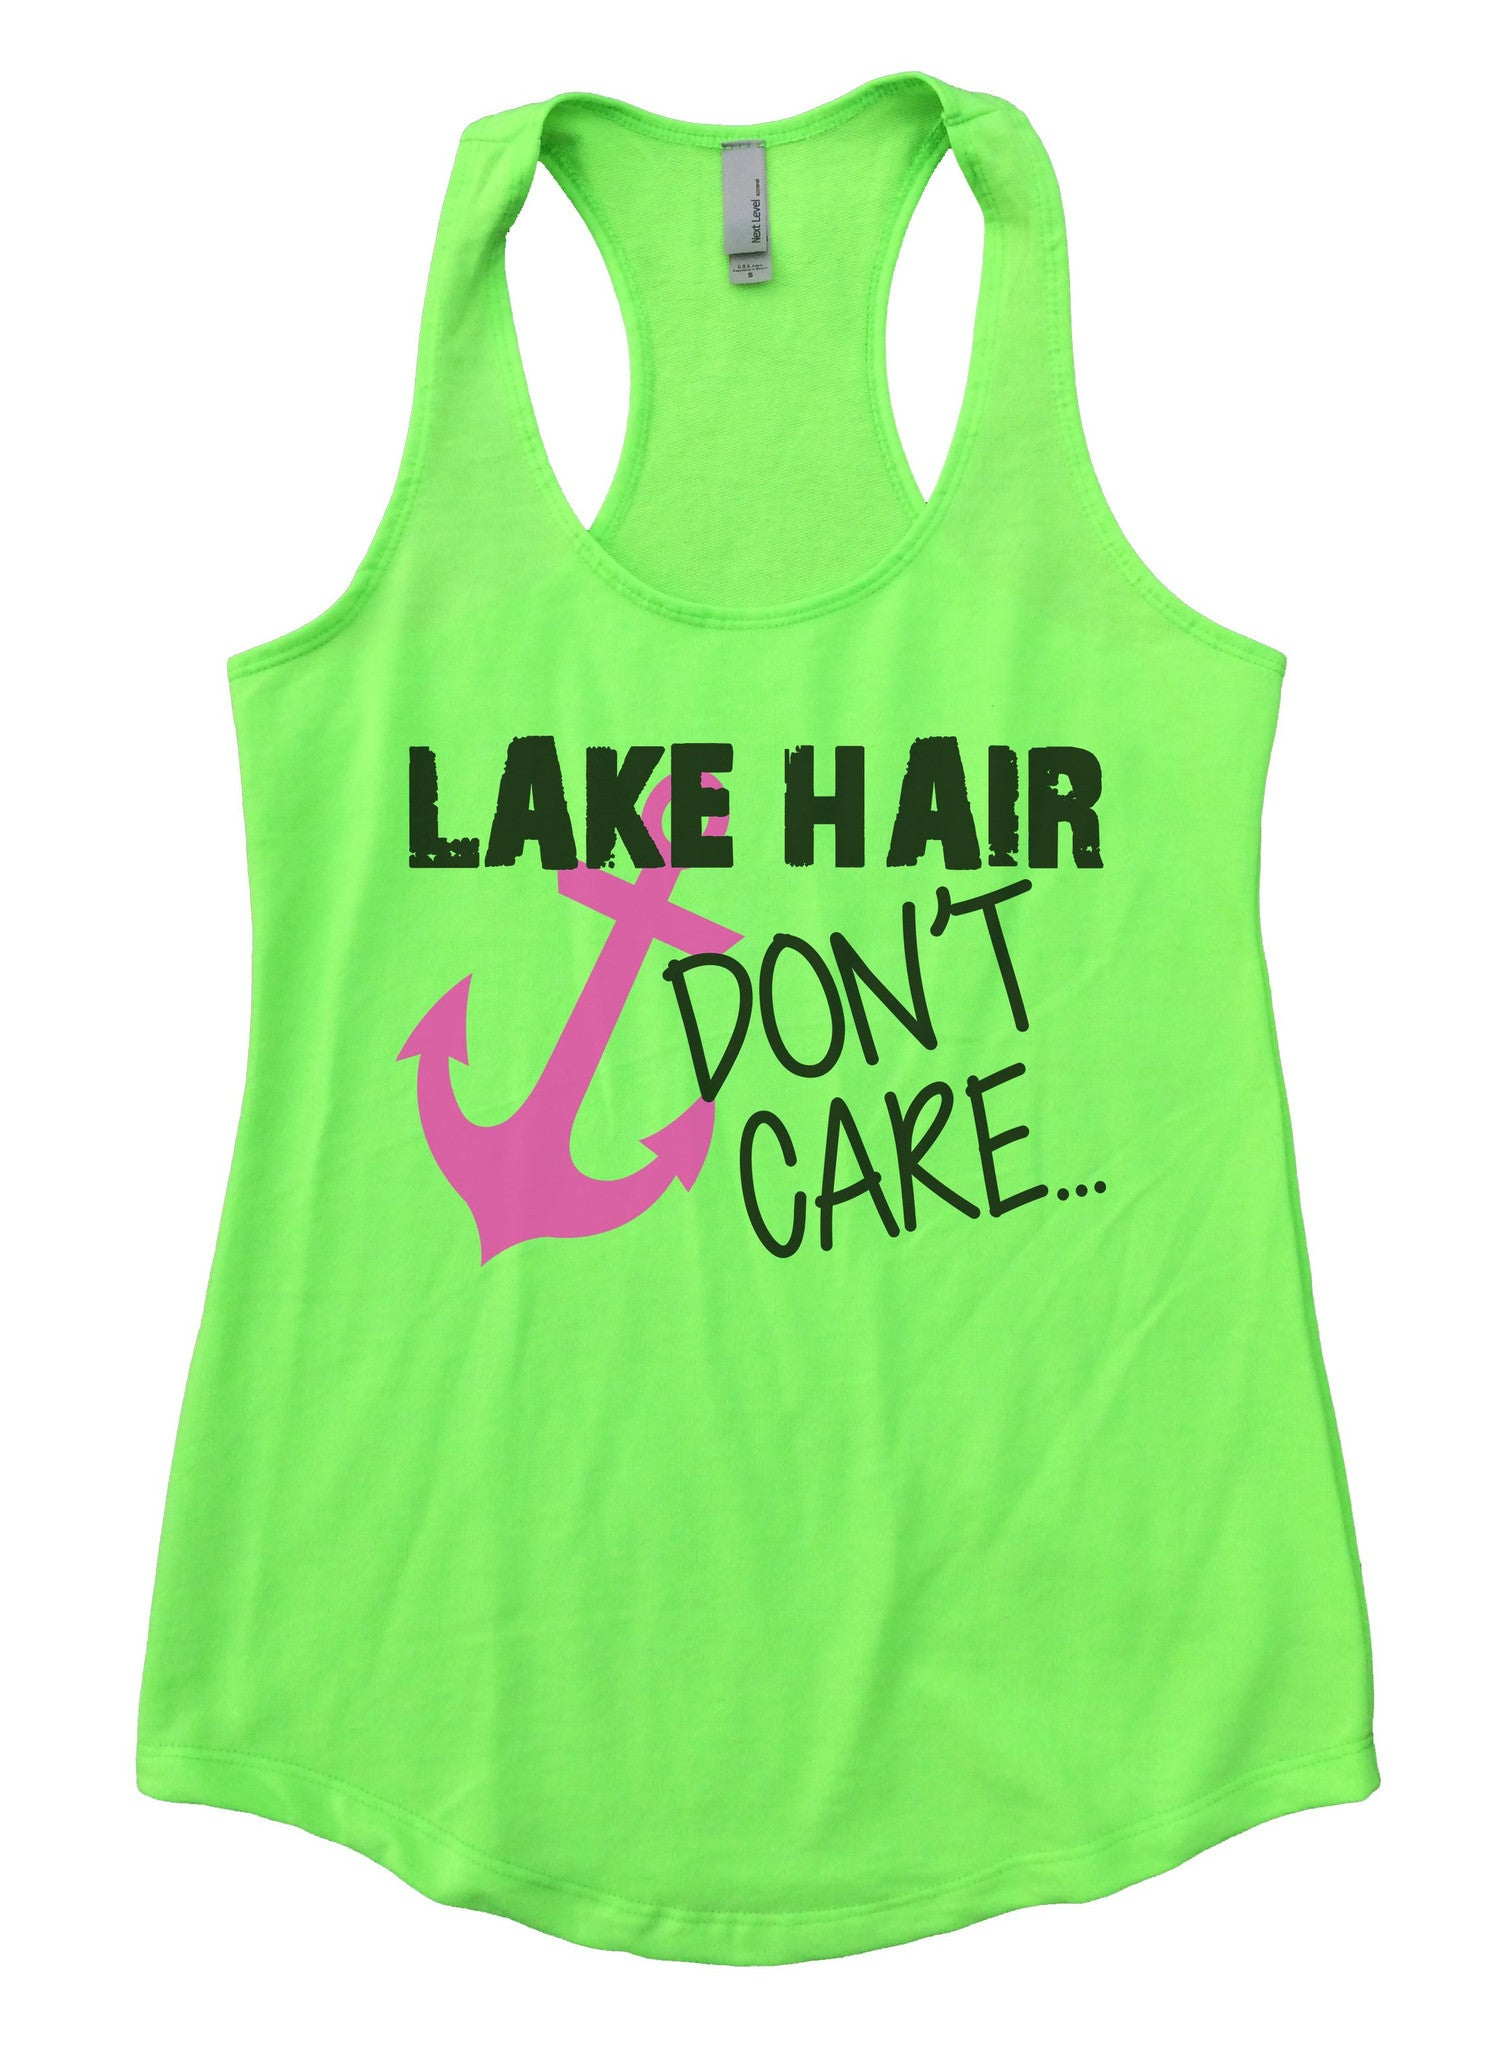 Lake Hair Dont't Care Womens Workout Tank Top F693 - Funny Shirts Tank Tops Burnouts and Triblends  - 2